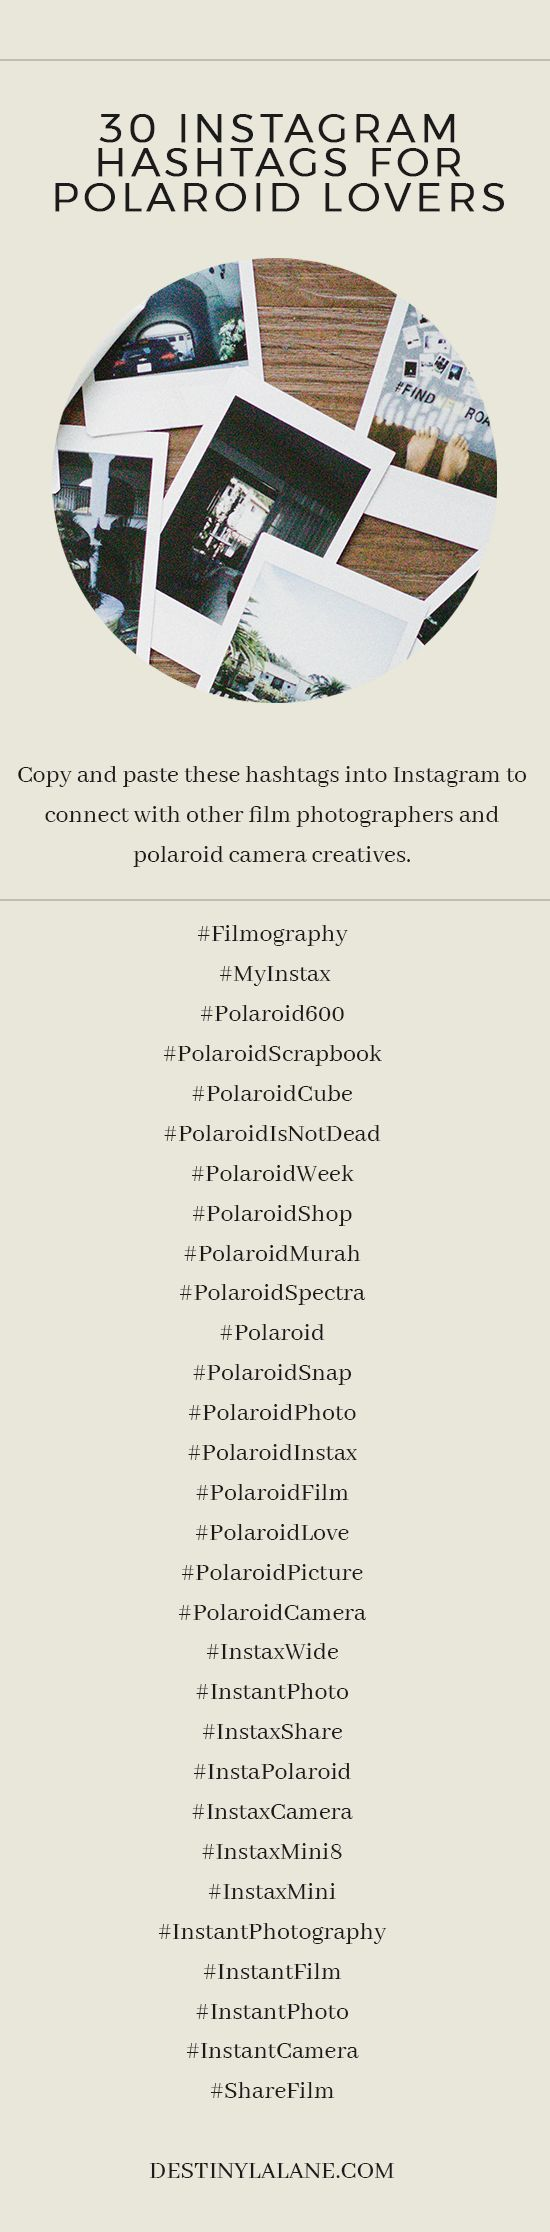 30 Instagram hashtags to use if you love film photography, polaroid cameras, or Fulifilm Instax 8   Instagram marketing   Blogging tips   destinylalane.com